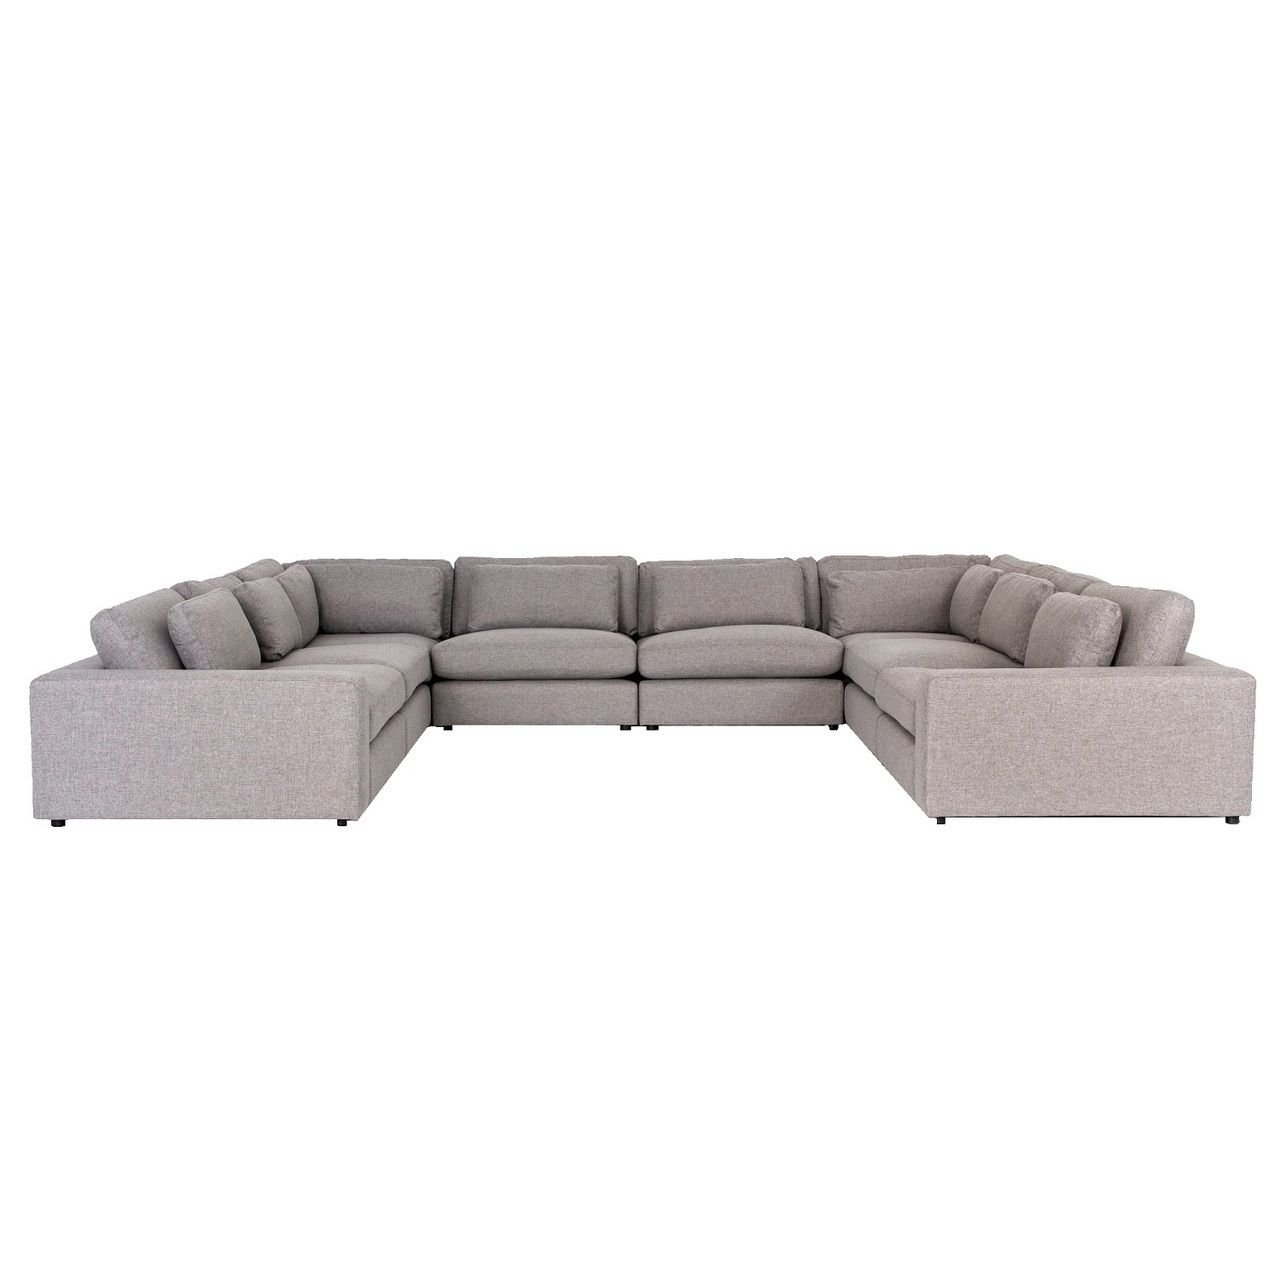 Bloor Contemporary Gray Fabric 8 Piece U Shaped Sectional Sofa U Shaped Sectional Sofa Grey Sectional Sofa Modern U Shaped Sectional